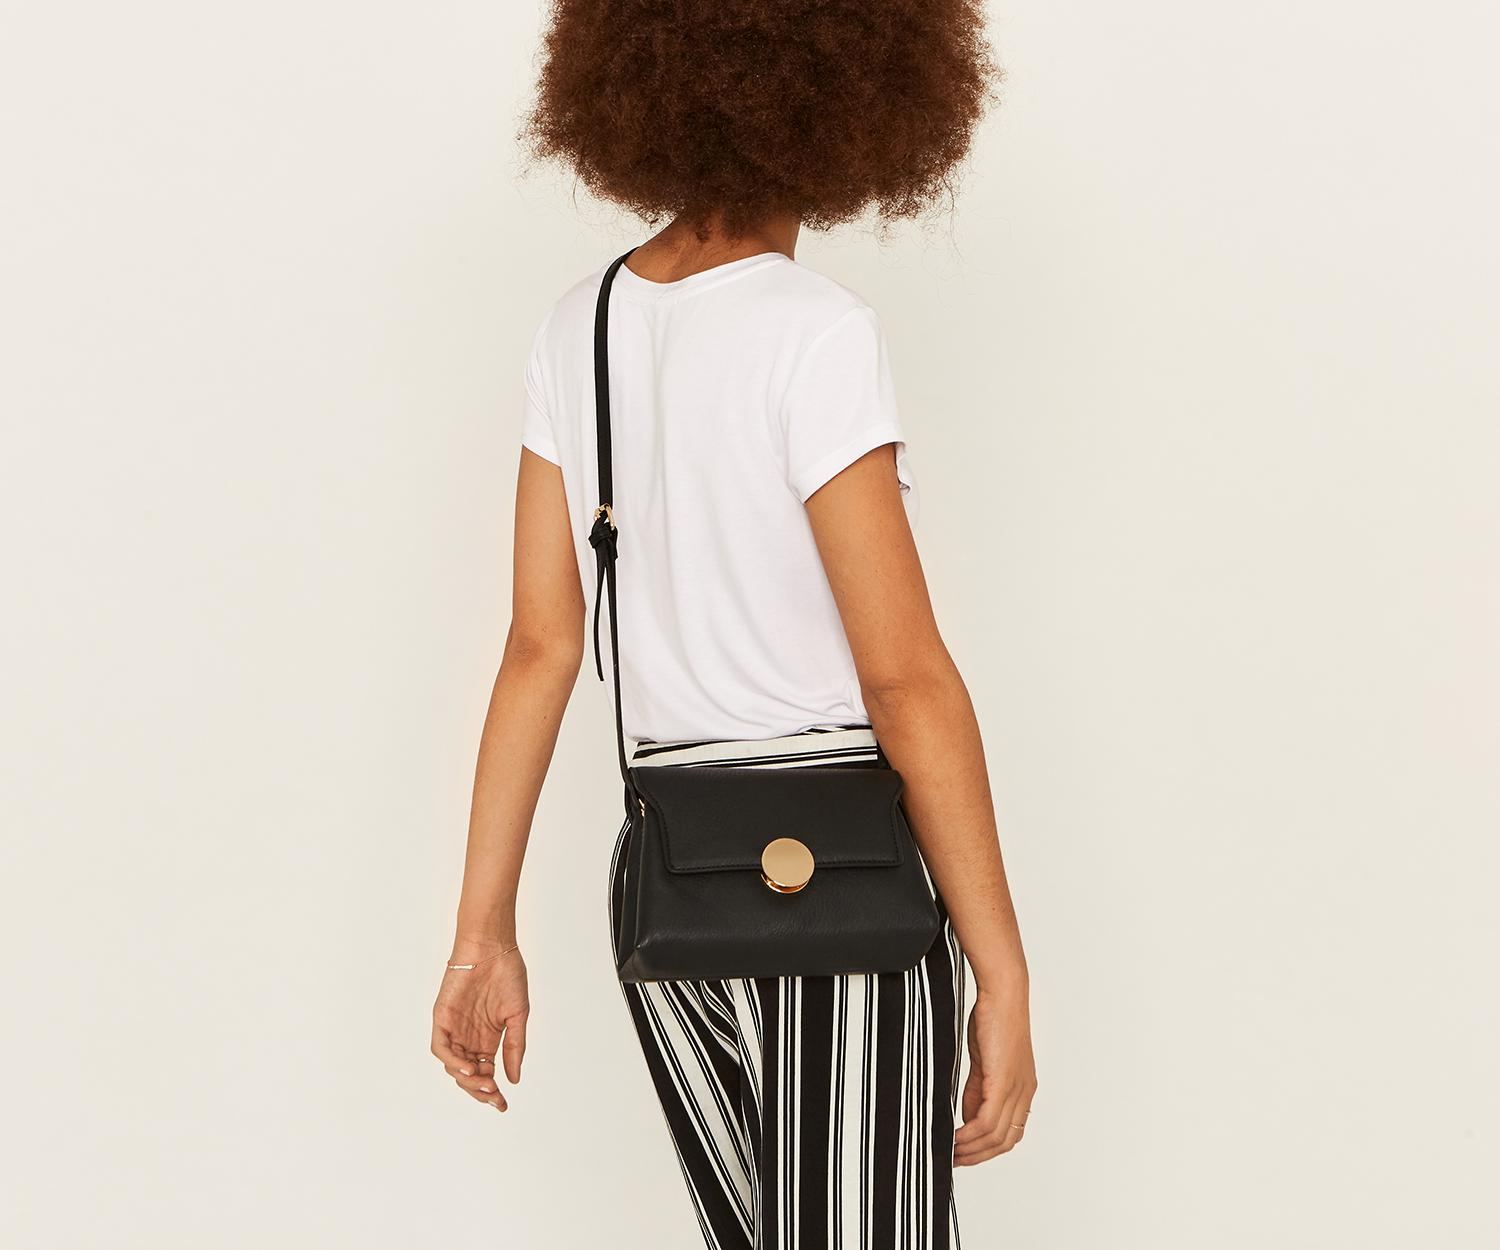 91666952bf8a Oasis Tallulah Cross-body Bag in Black - Lyst